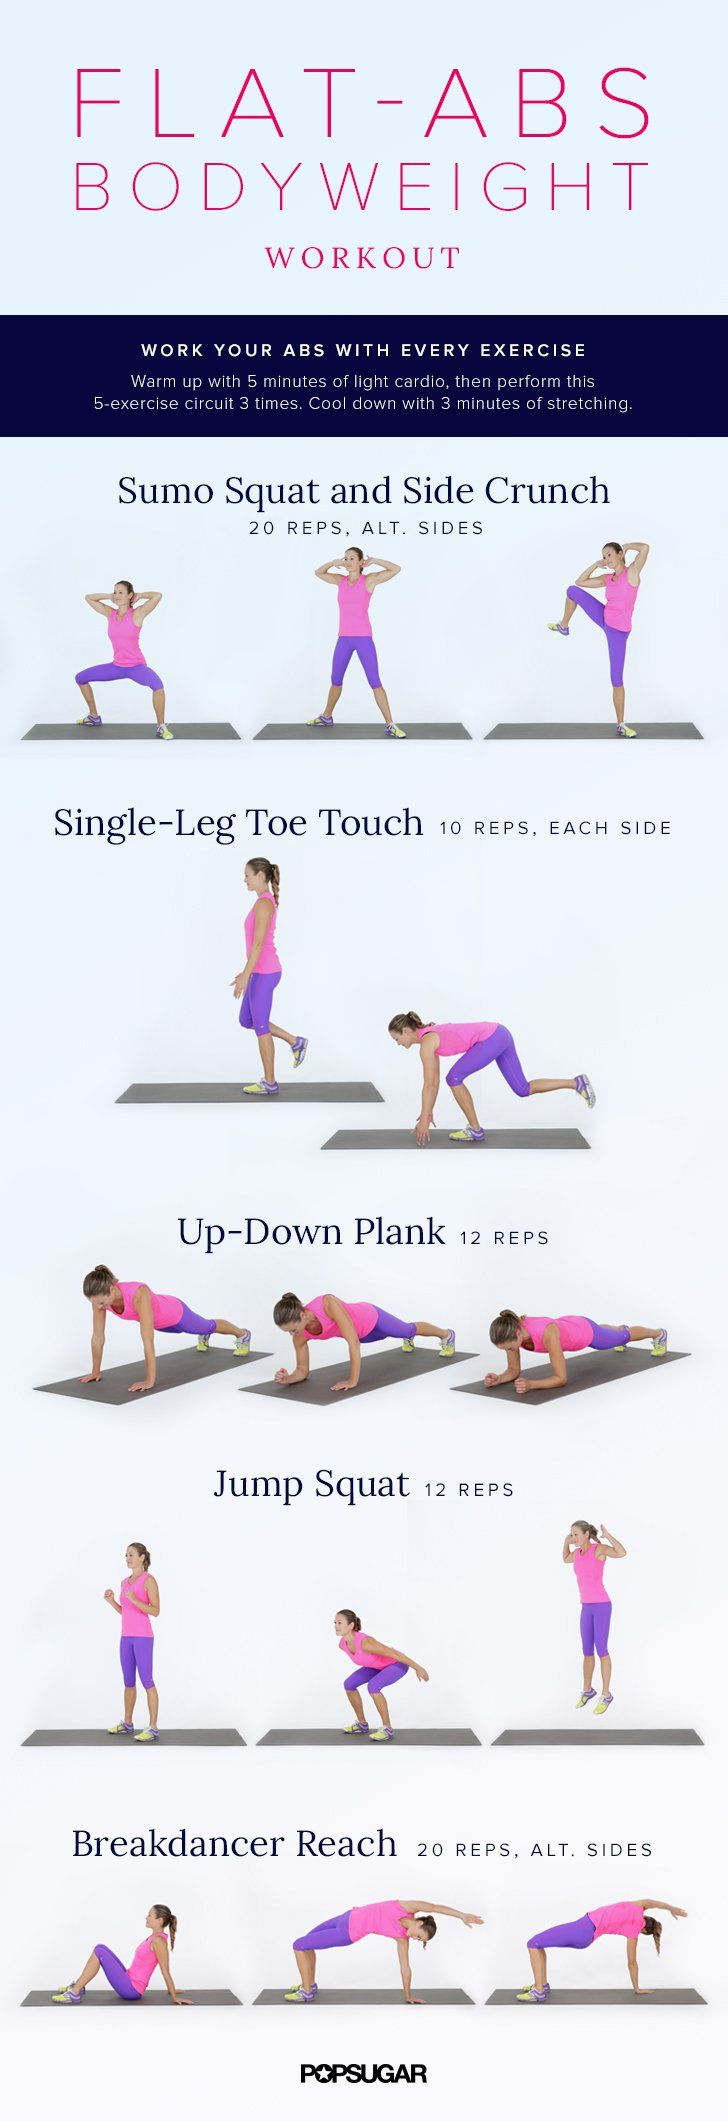 Flat-Abs Bodyweight Workout                                                                                                                                                     More